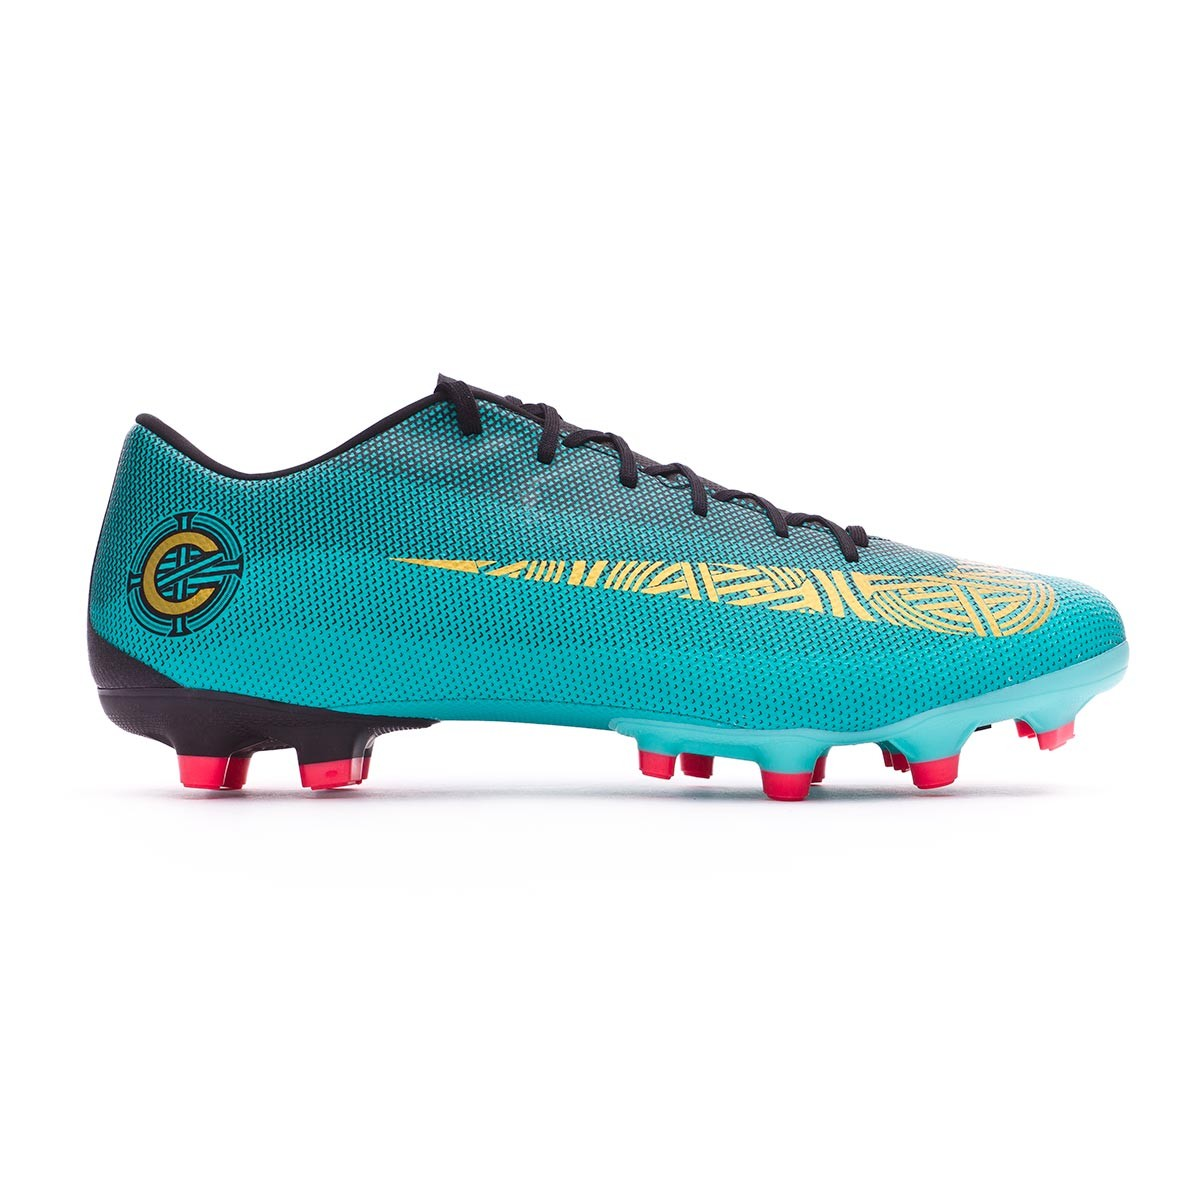 premium selection 2fe82 507d1 Football Boots Nike Mercurial Vapor XII Academy CR7 MG Clear jade-Metallic  vivid gold-Black - Tienda de fútbol Fútbol Emotion